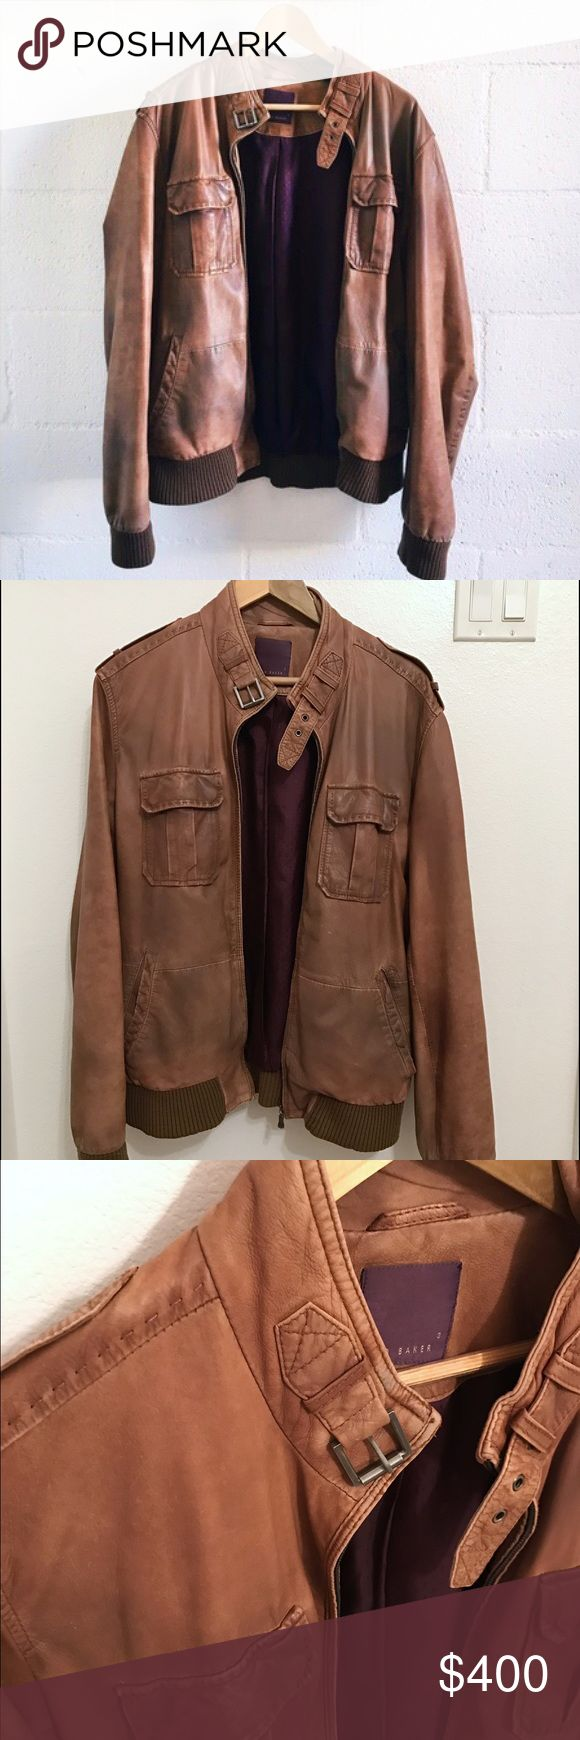 Ted Baker Brown Leather Jacket This size 3, leather Ted Baker jacket is well worn, the leather is supple and soft (leather gets better with age!). It's a Ted Baker size 3, or a men's medium in regular speech. Ted Baker Jackets & Coats Bomber & Varsity